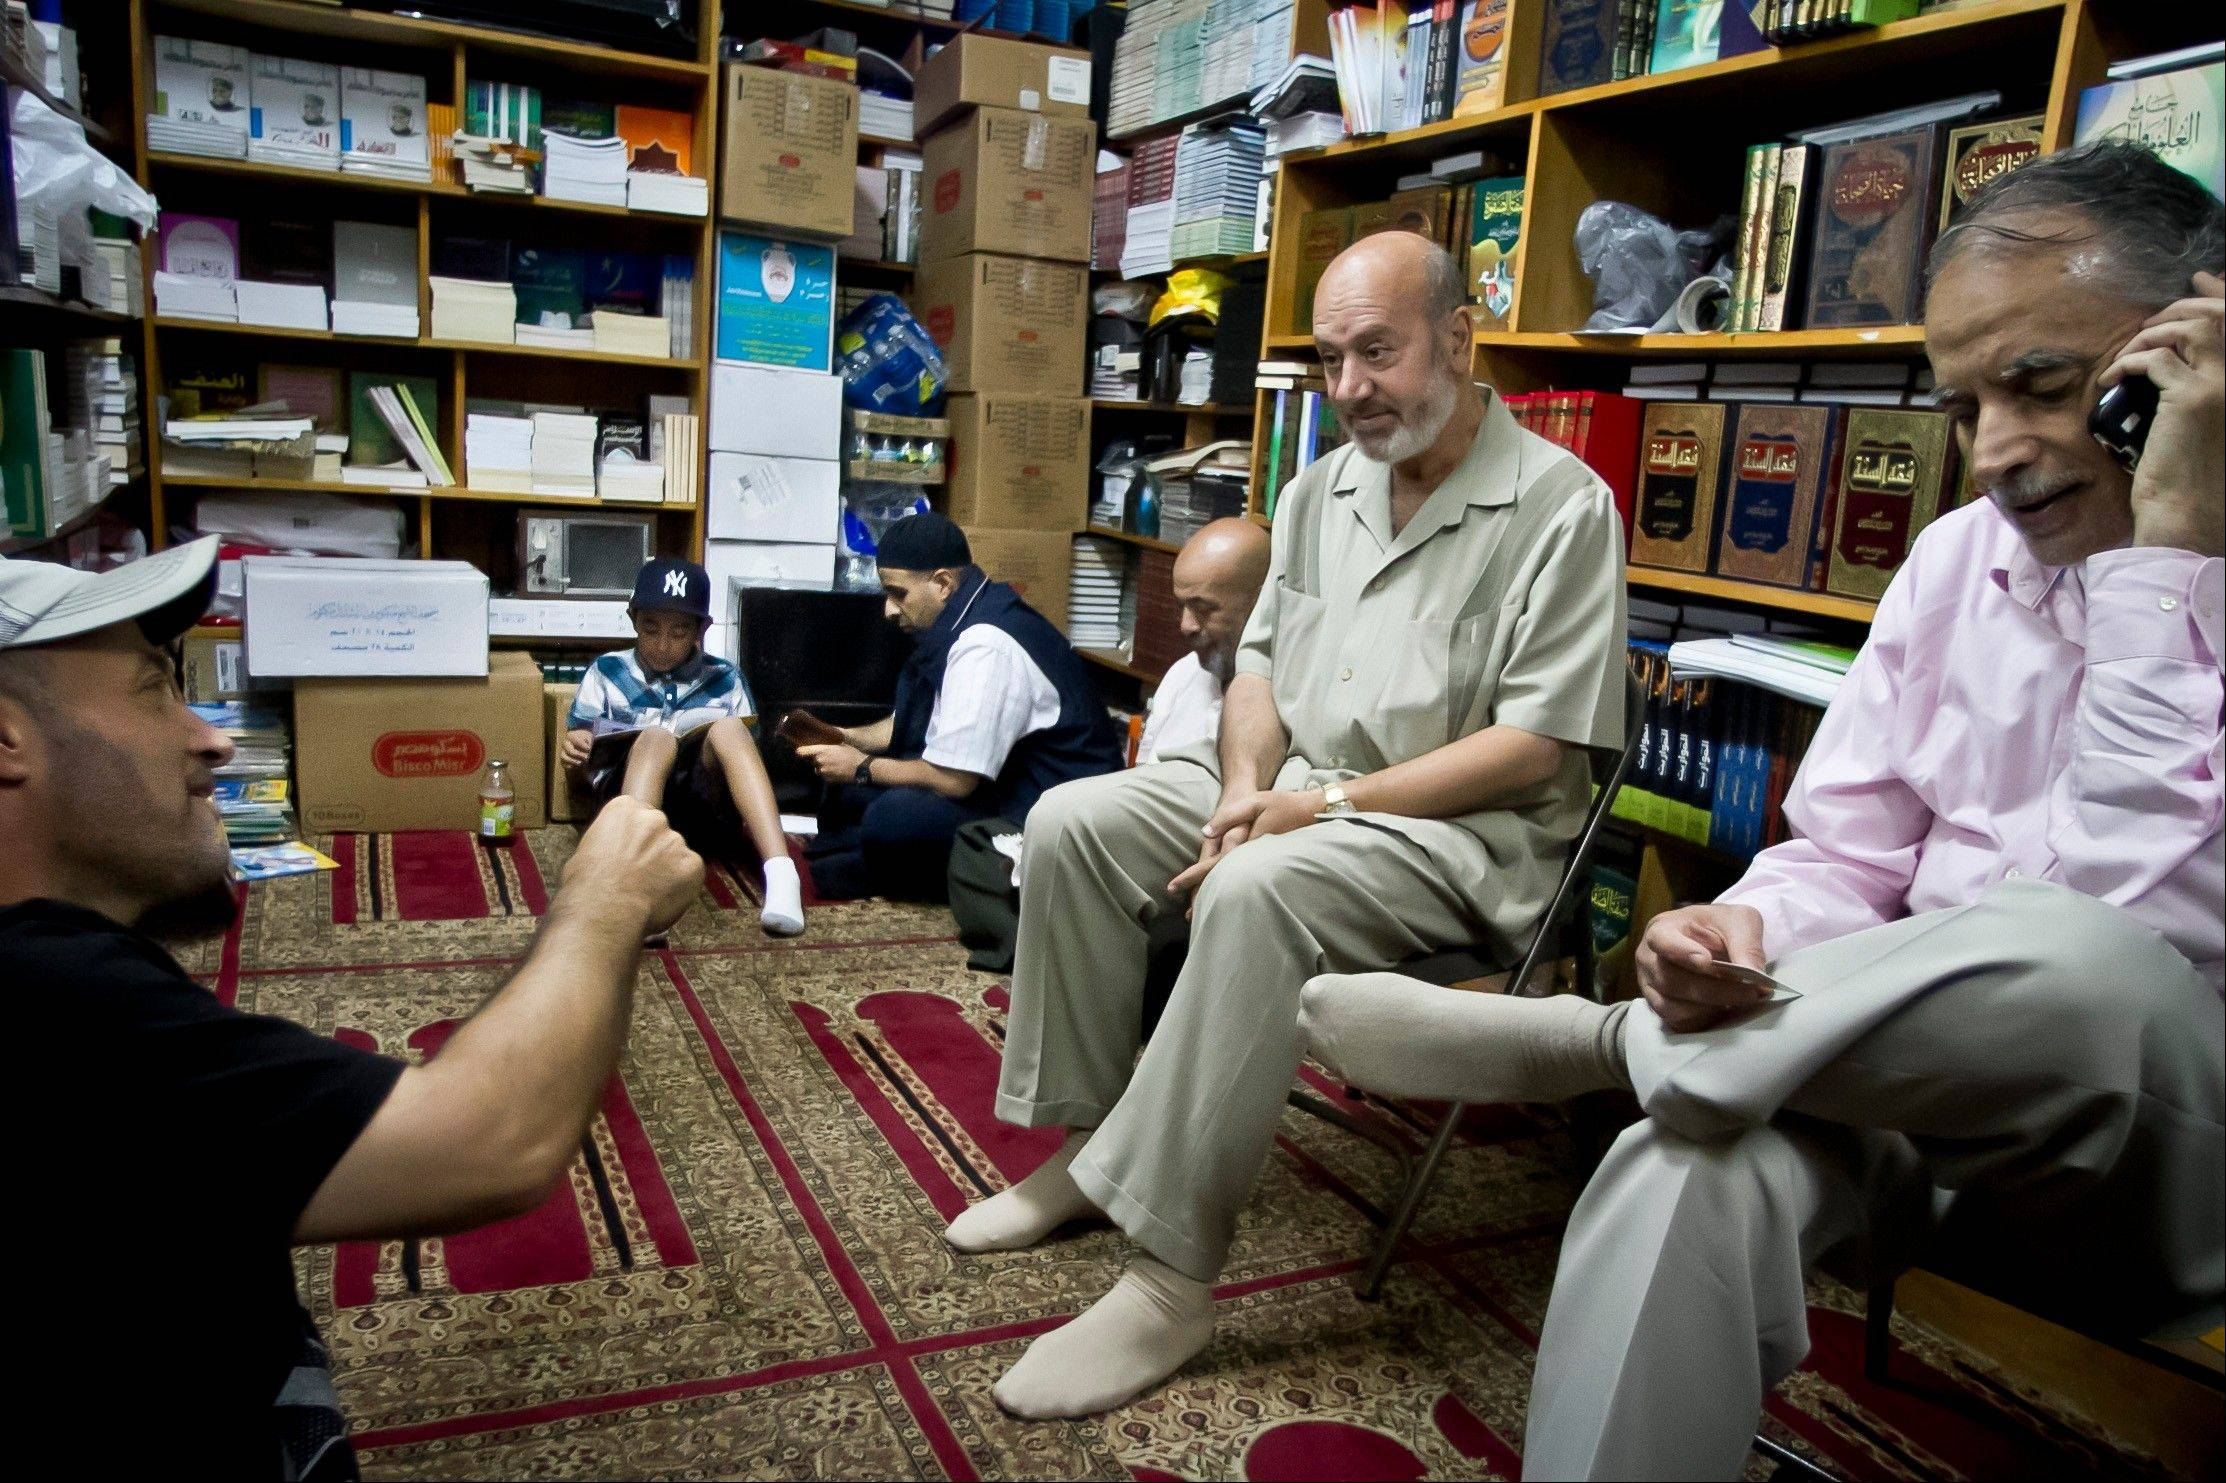 Zein Rimawi, 59, second from right, a leader and founder of the Islamic Society of Bay Ridge and mosque, meet with members in his office before a Jumu'ah prayer service at the mosque on Friday, Aug. 16, 2013 in Brooklyn, N.Y. The NYPD targeted his mosque as a part of a terrorism enterprise investigation beginning in 2003, spying on it for years. The mosque has never been charged as part of